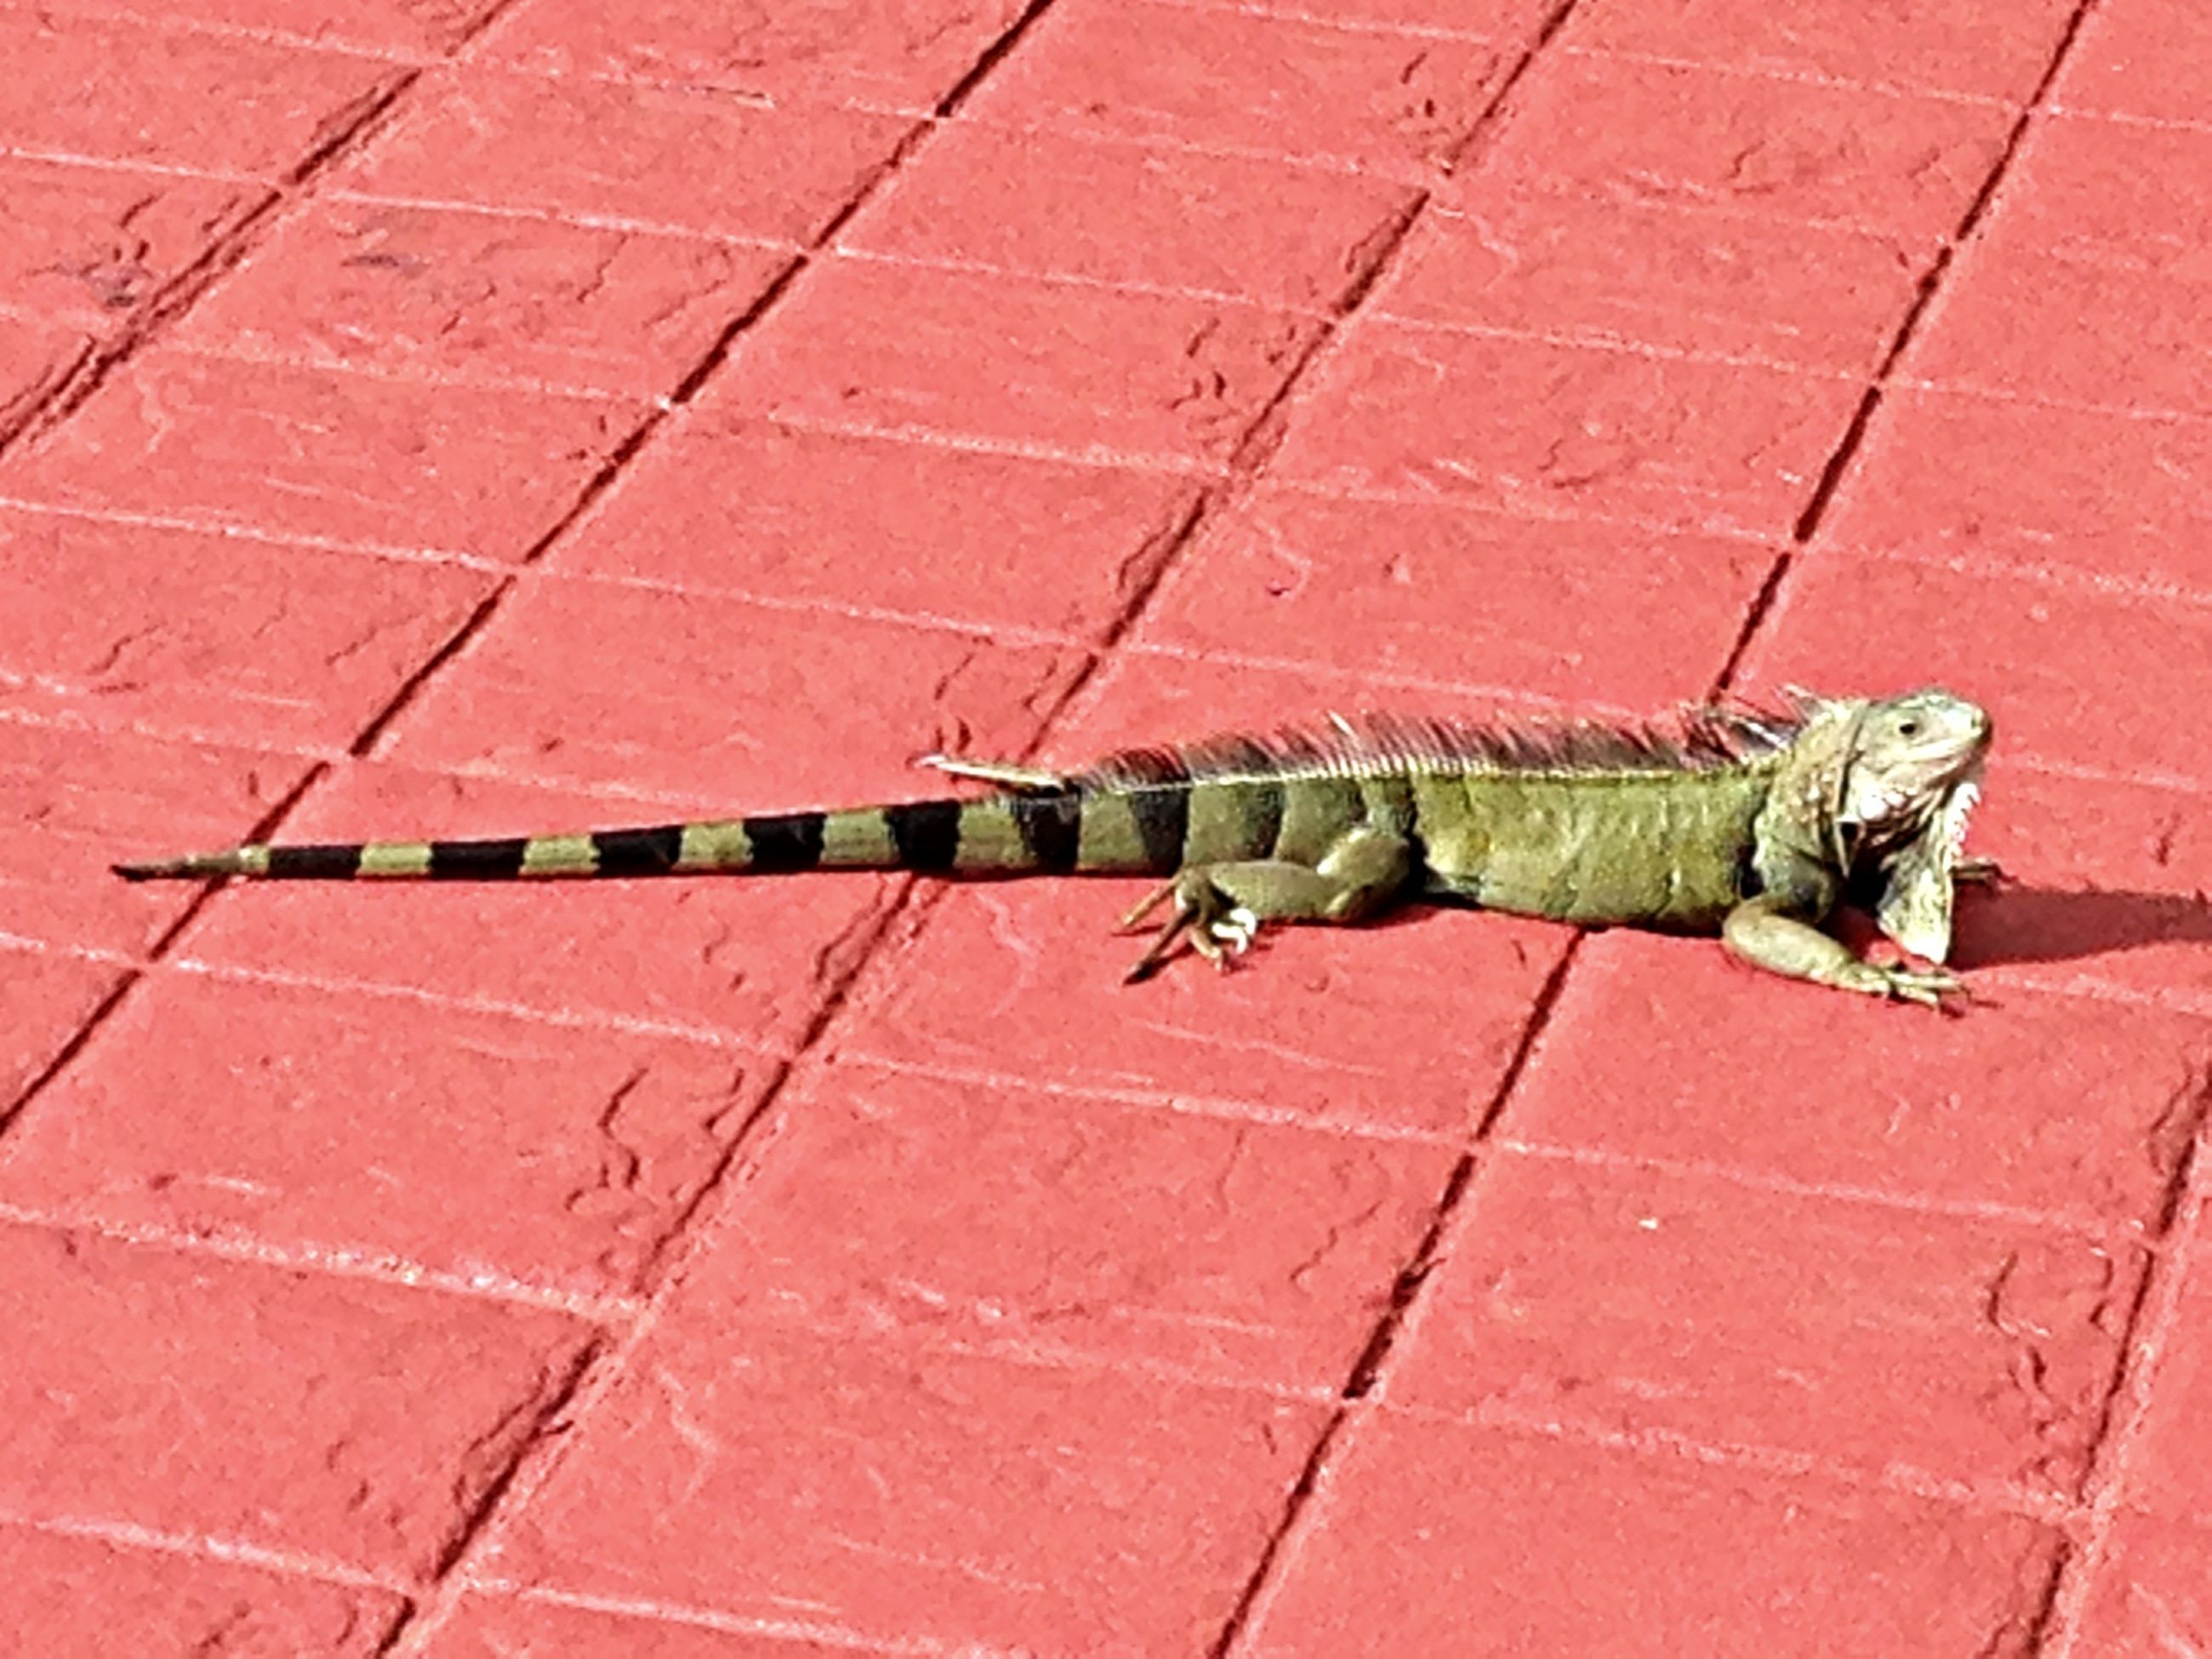 animal themes, one animal, high angle view, wall - building feature, outdoors, built structure, tiled floor, street, day, wildlife, building exterior, no people, animals in the wild, full length, architecture, insect, sidewalk, cobblestone, domestic animals, transportation